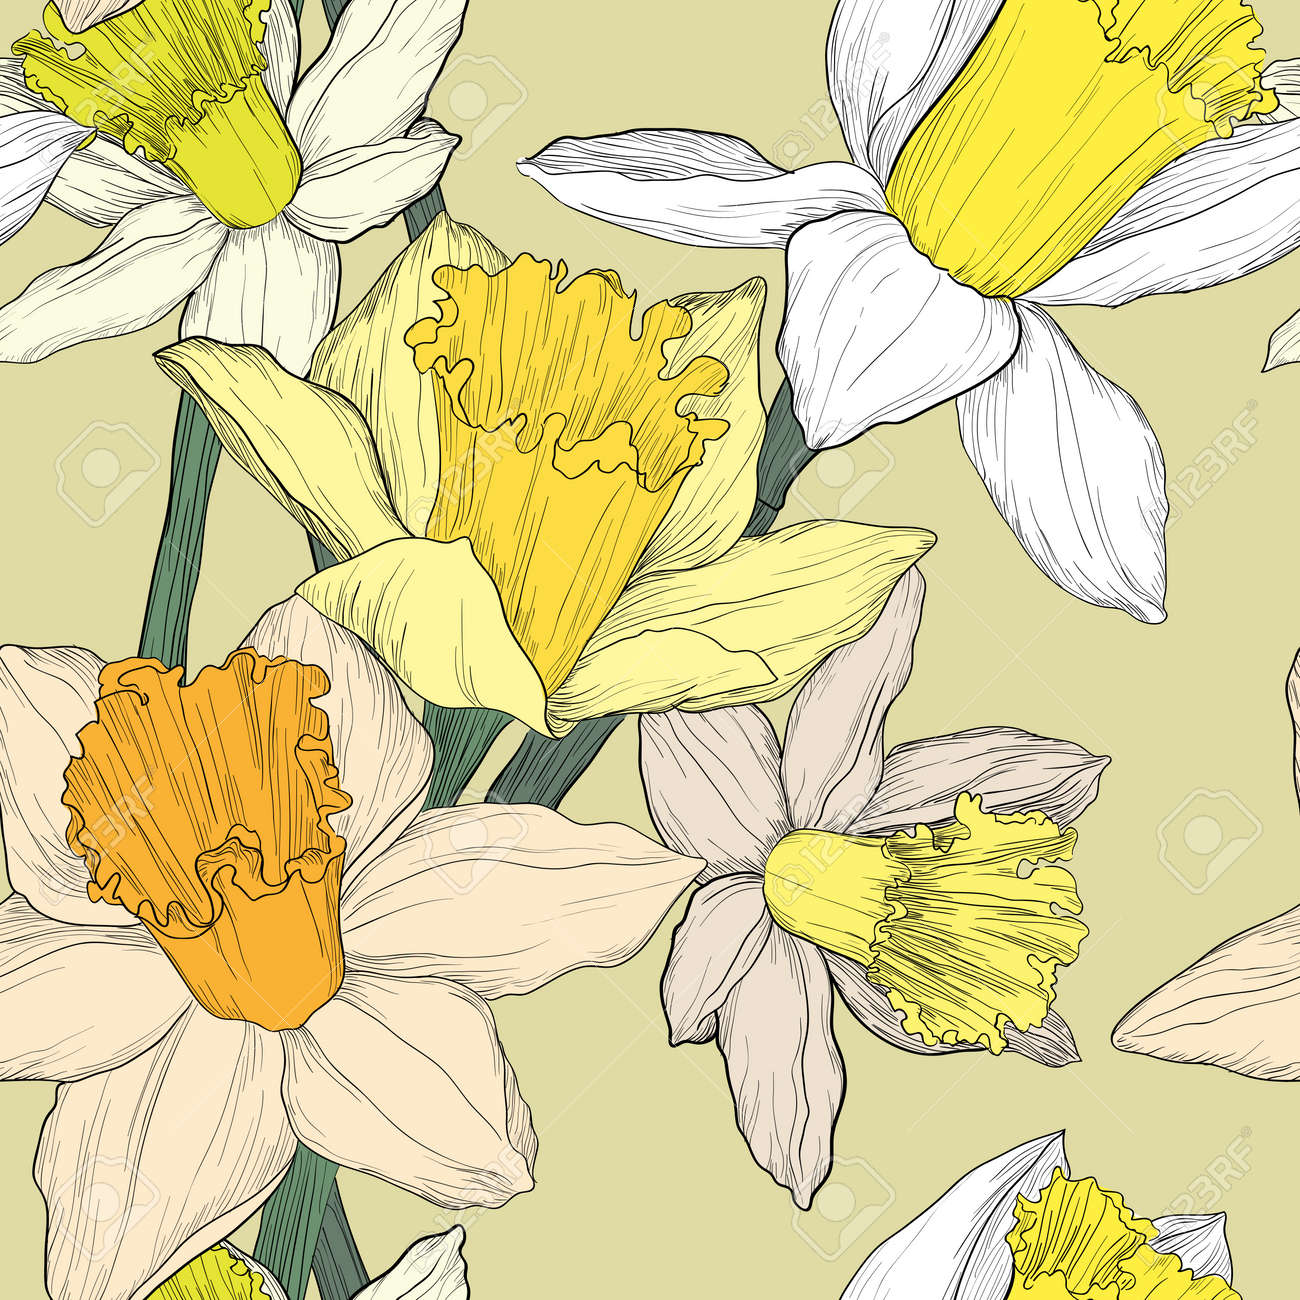 Yellow and white jonquil daffodil narcissus seamless pattern - 52235818